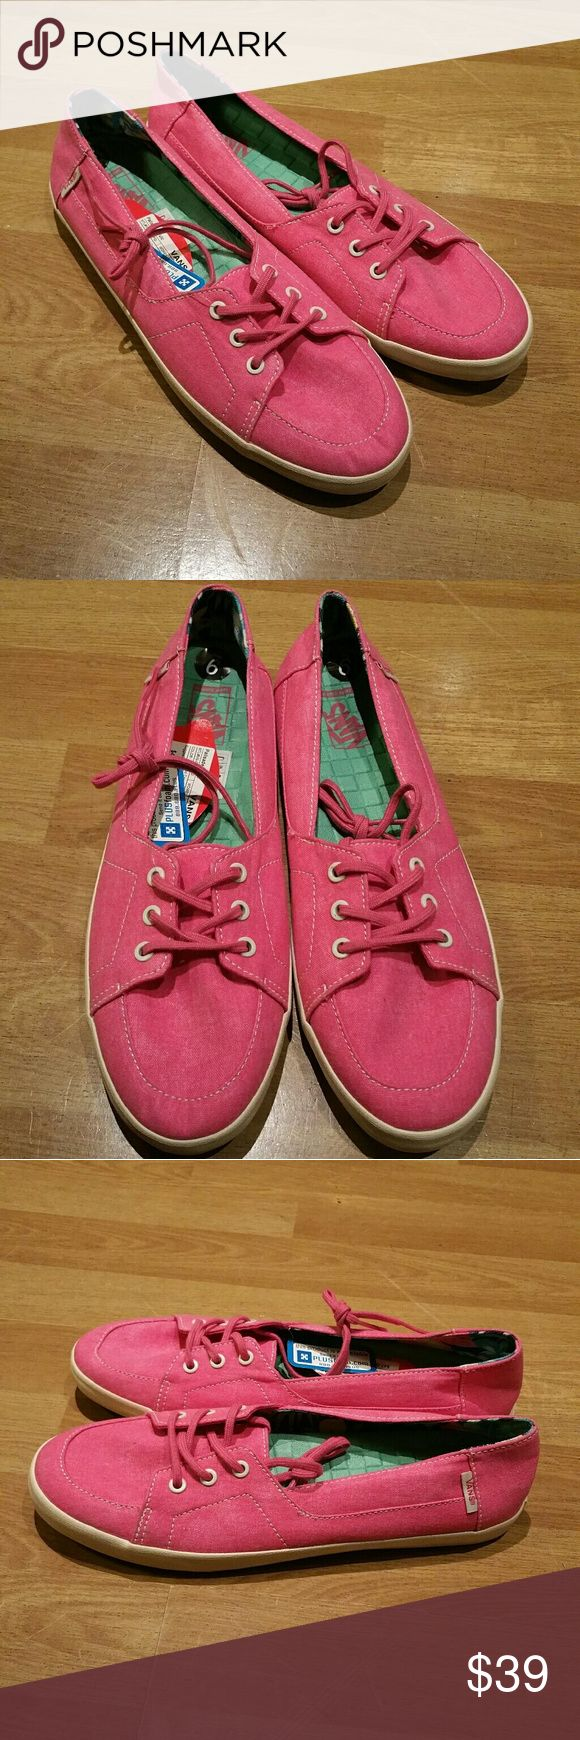 Womens Vans sneakers Brand new. Size 9. Never worn. Vans Shoes Sneakers